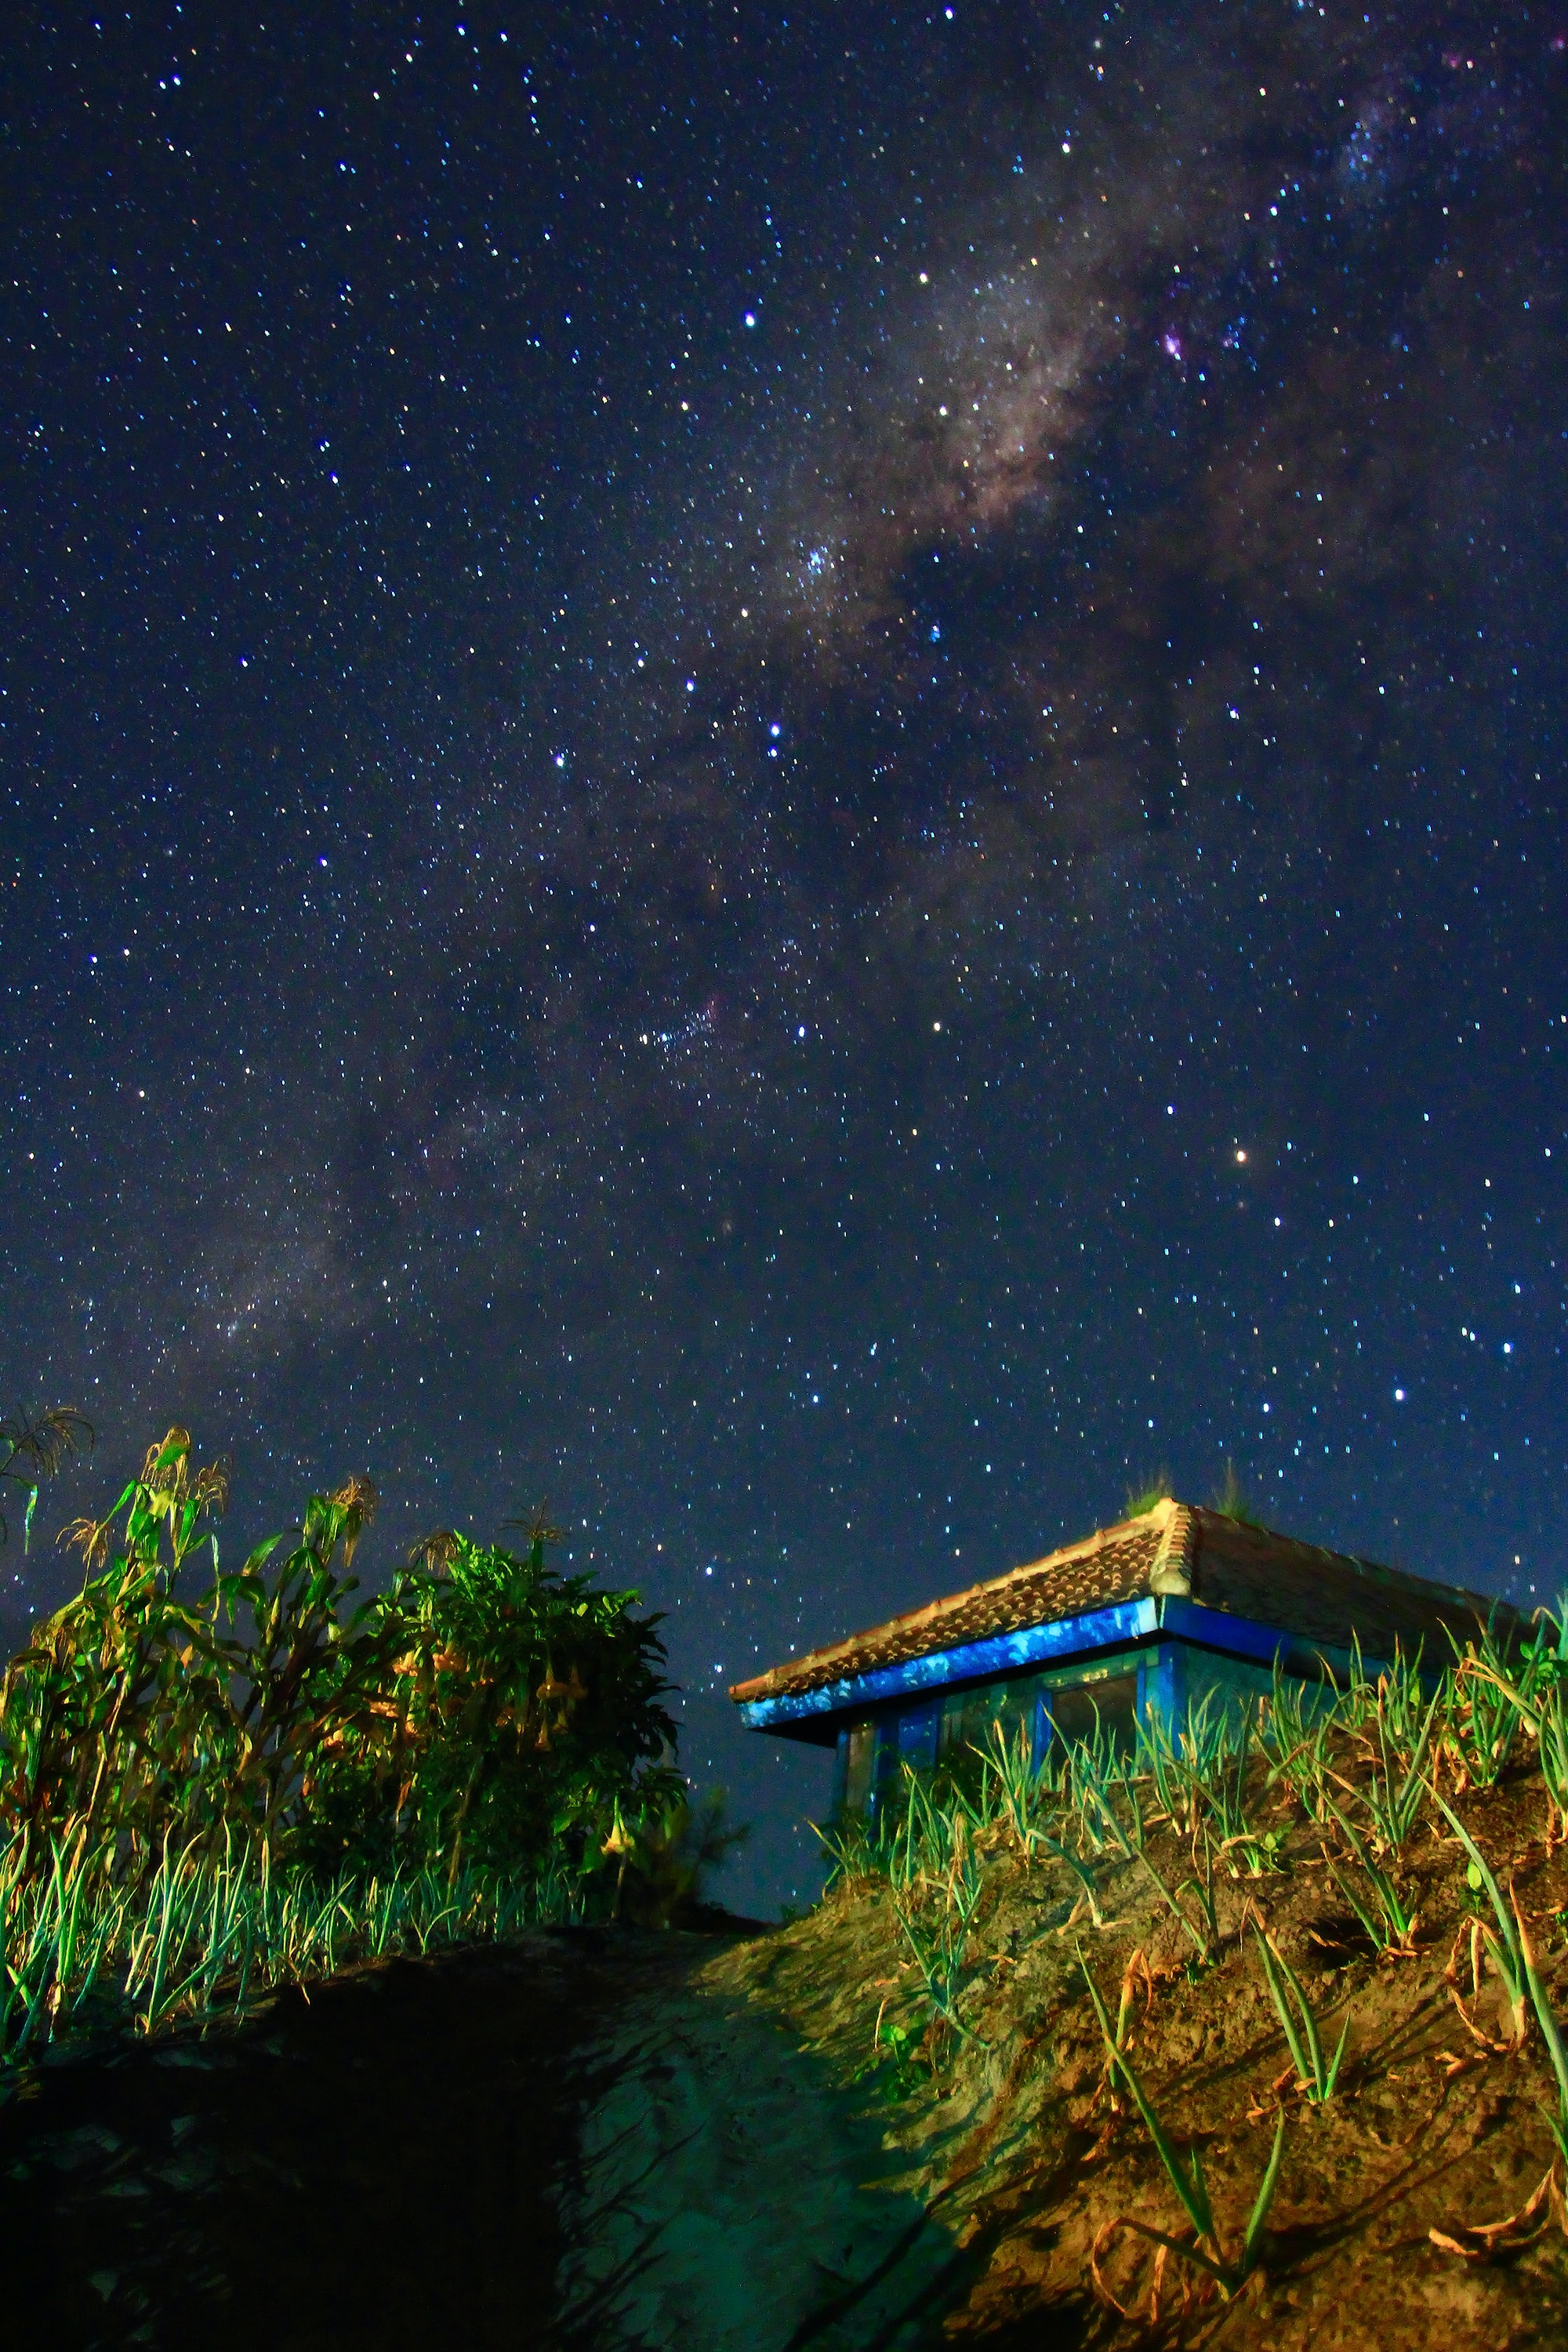 milky way during nighttime